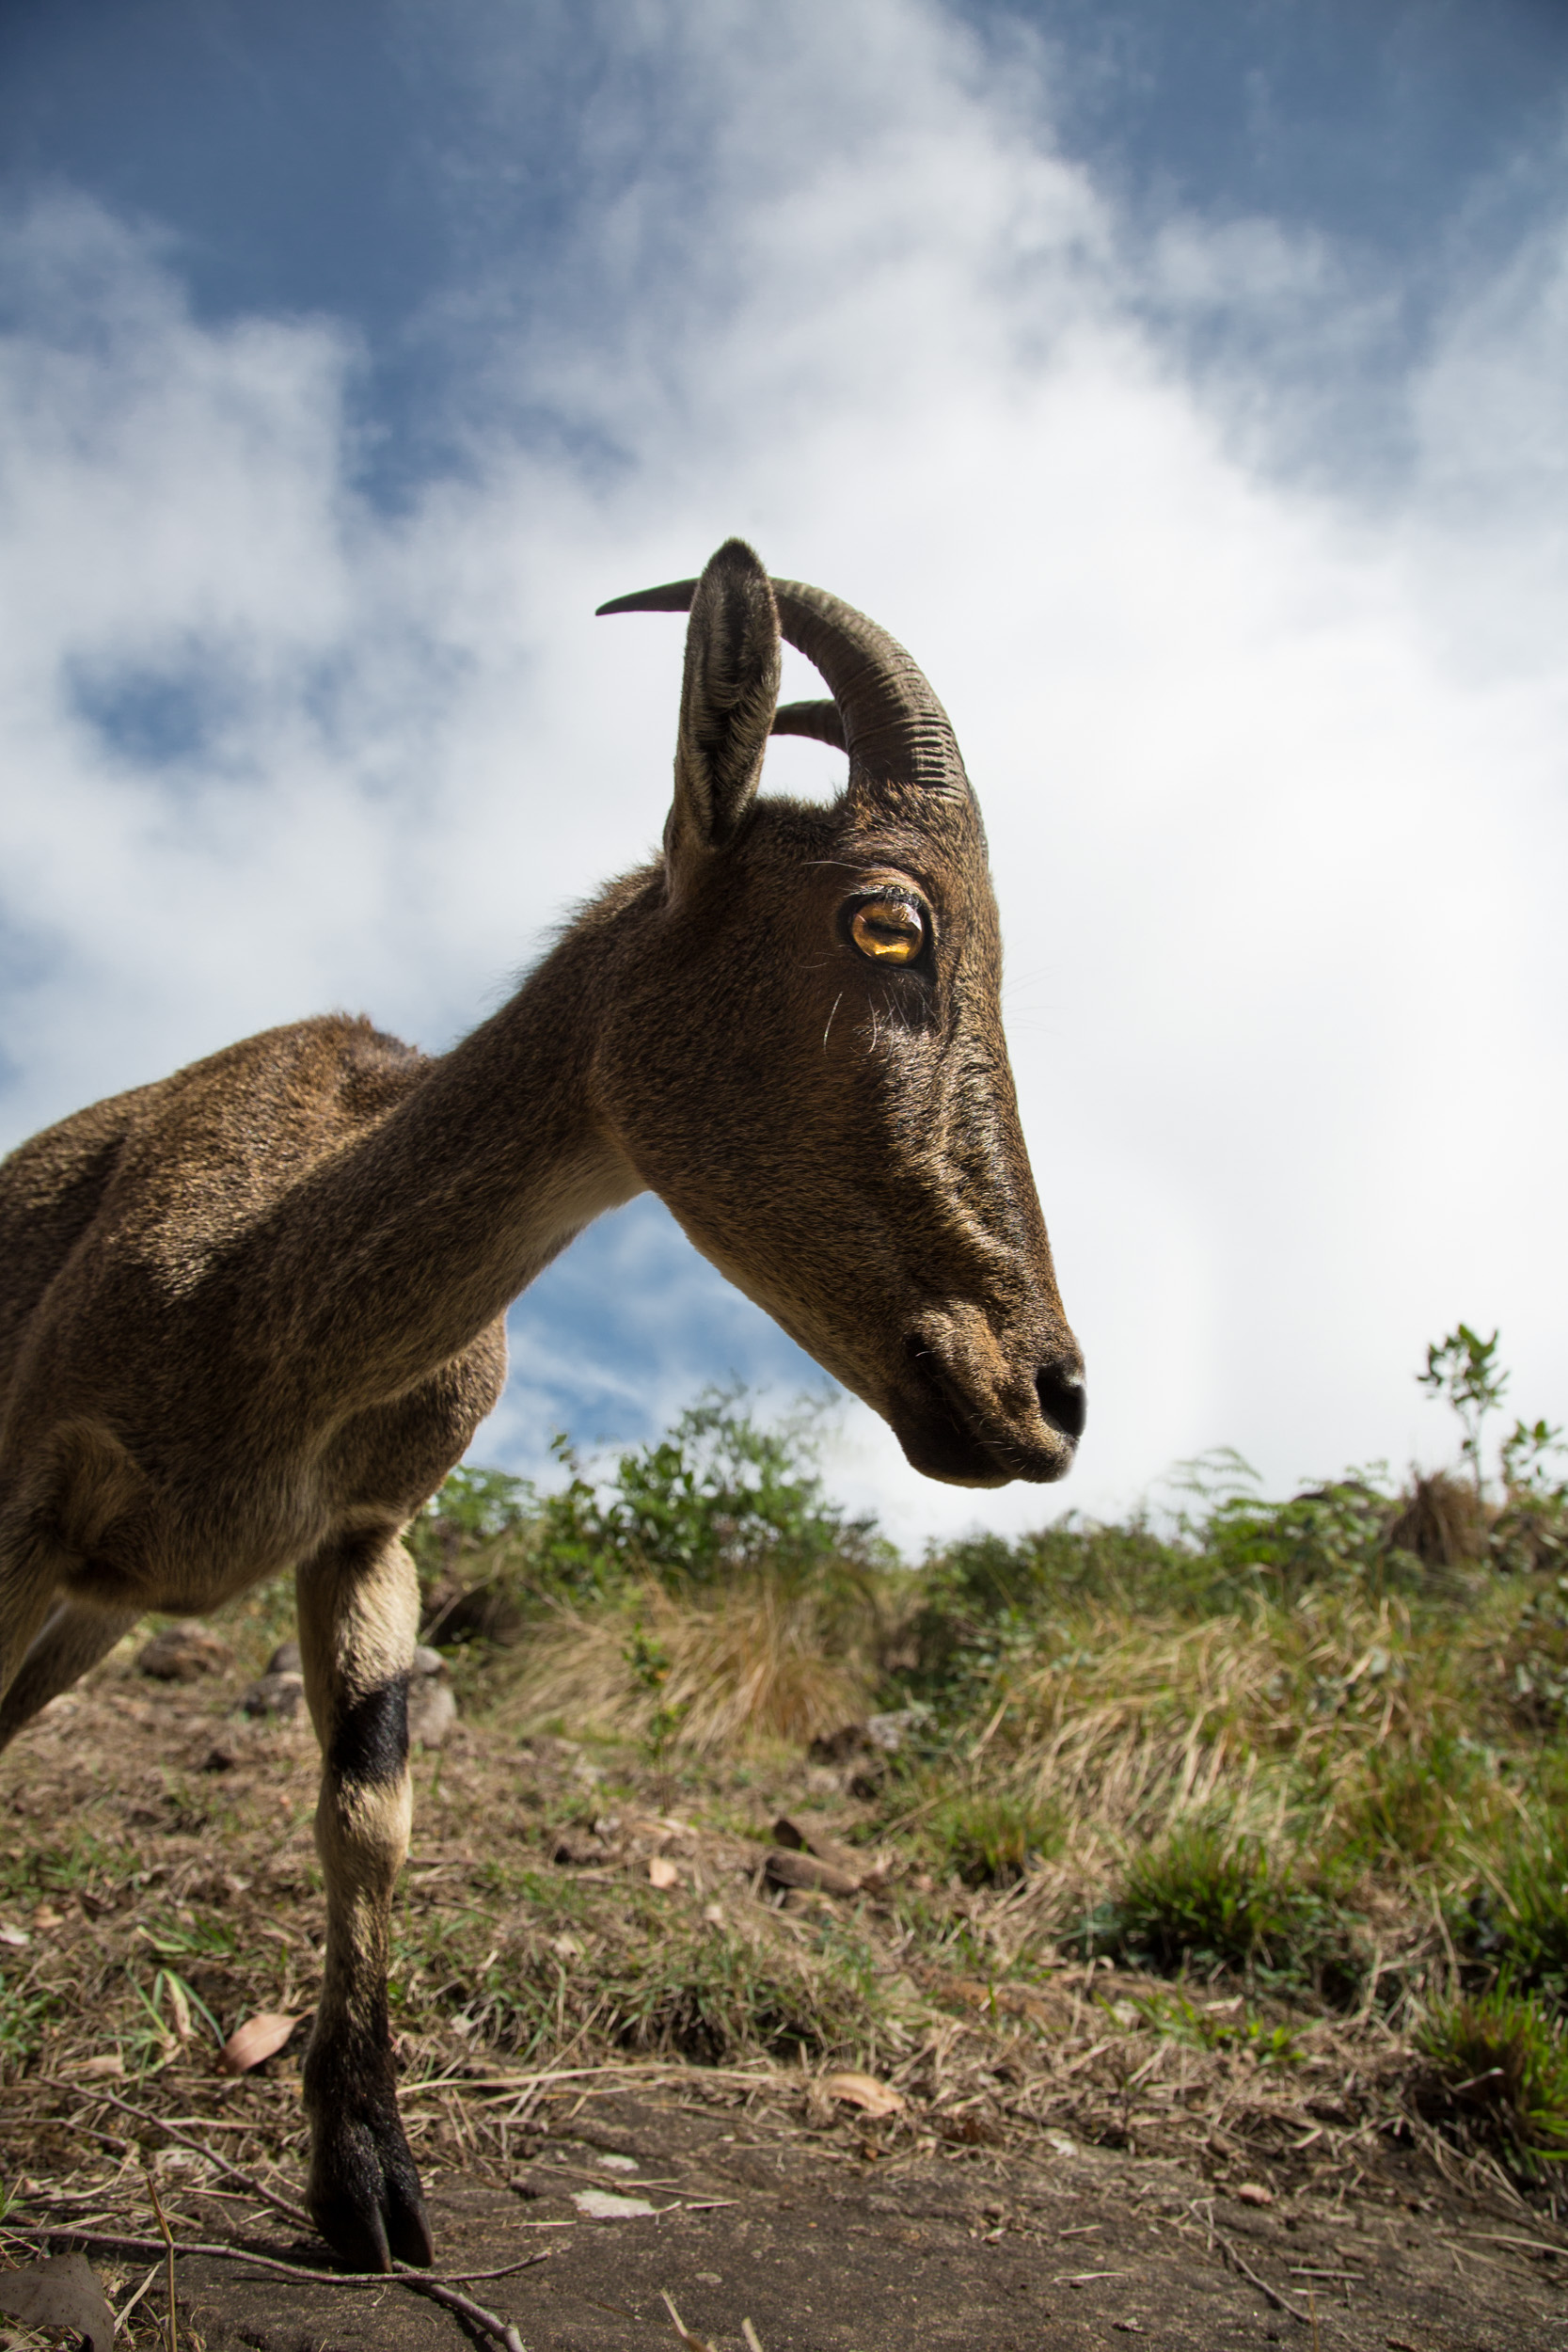 16mm shot with a remote... just left my camera in the path of the Tahr and hoped it would come that way.